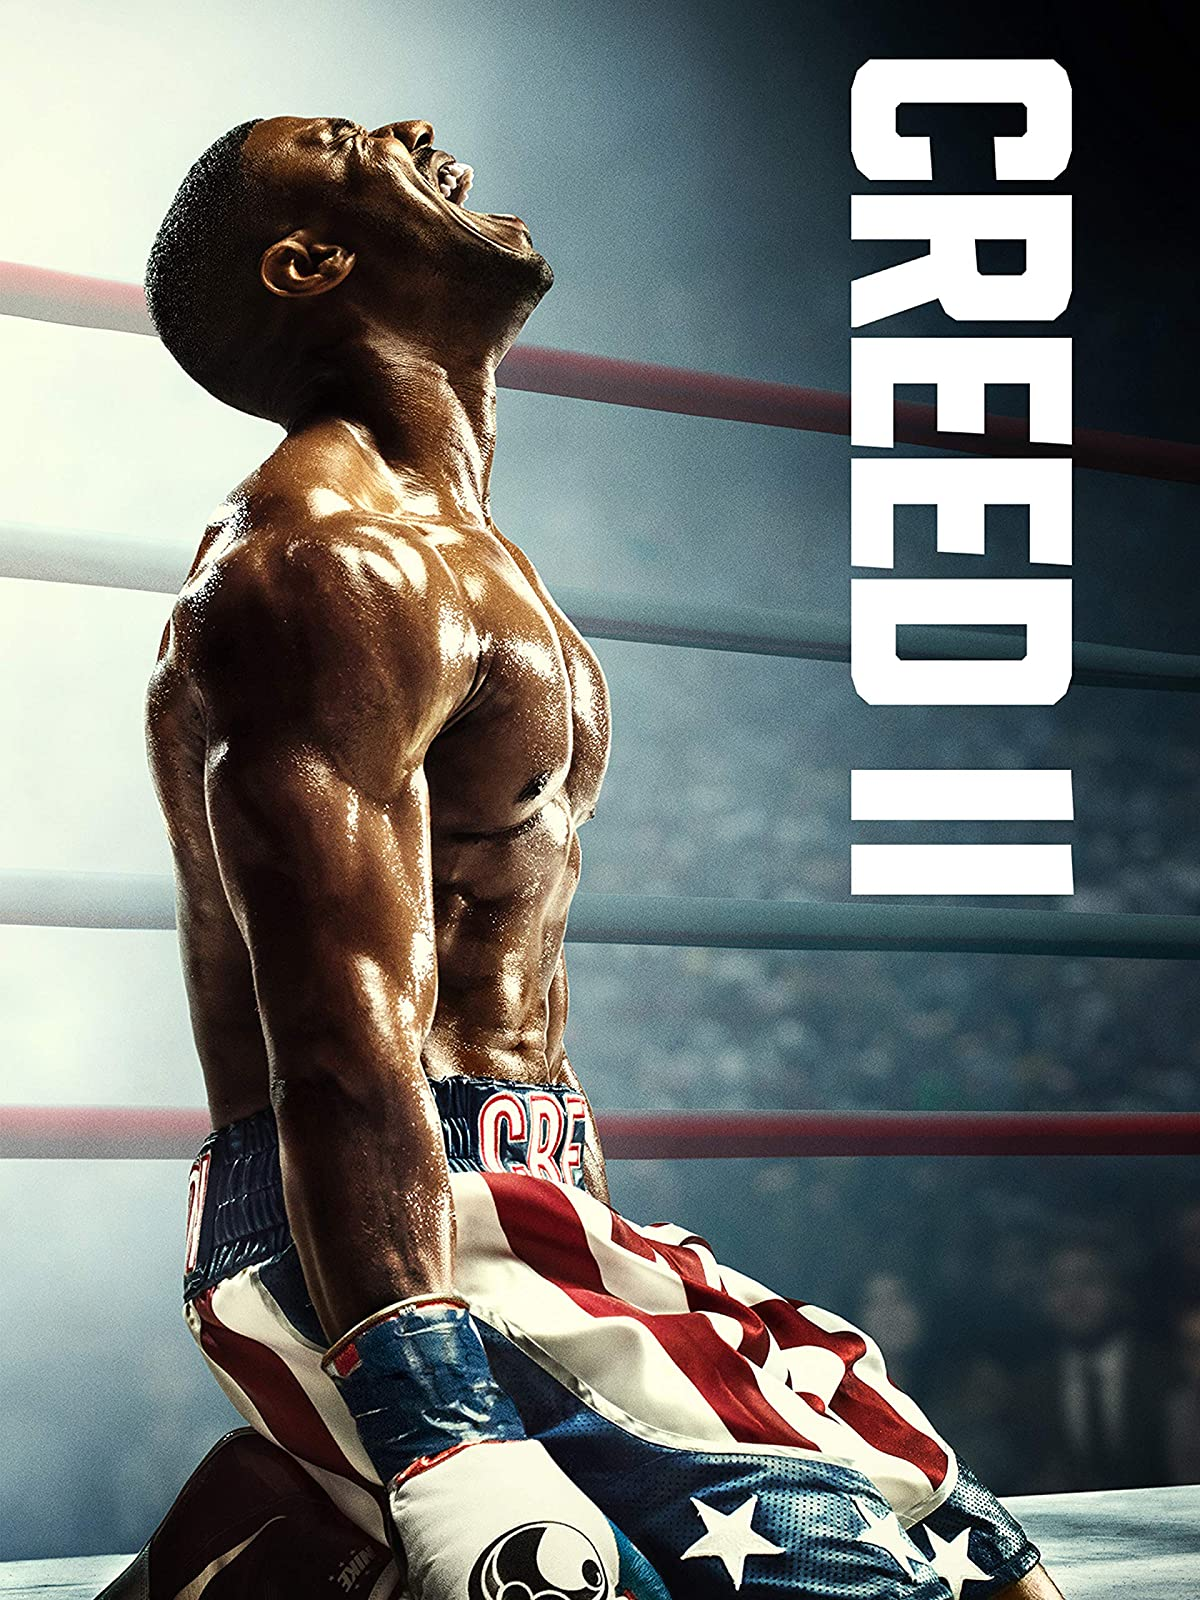 watch creed 2 online free reddit